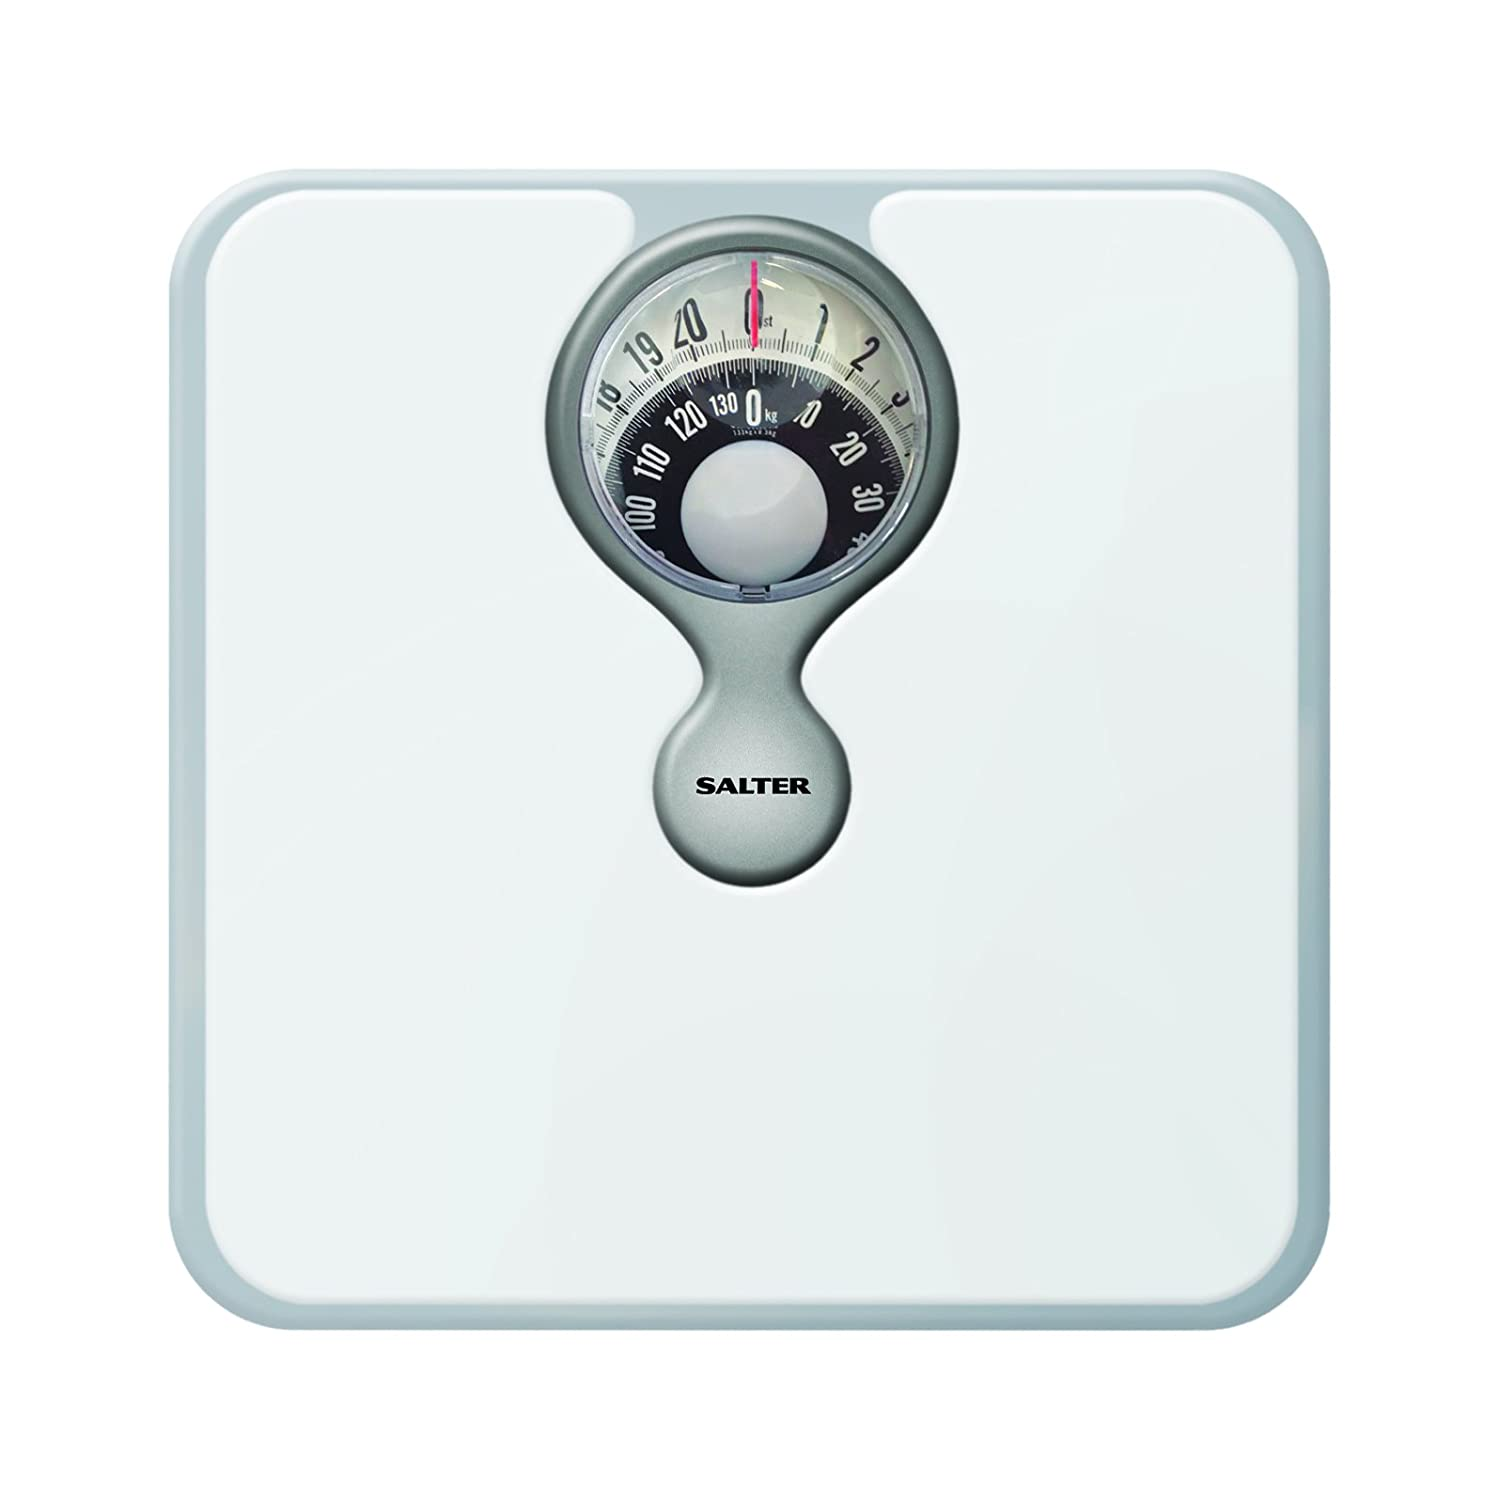 Salter Mechanical Bathroom Scales